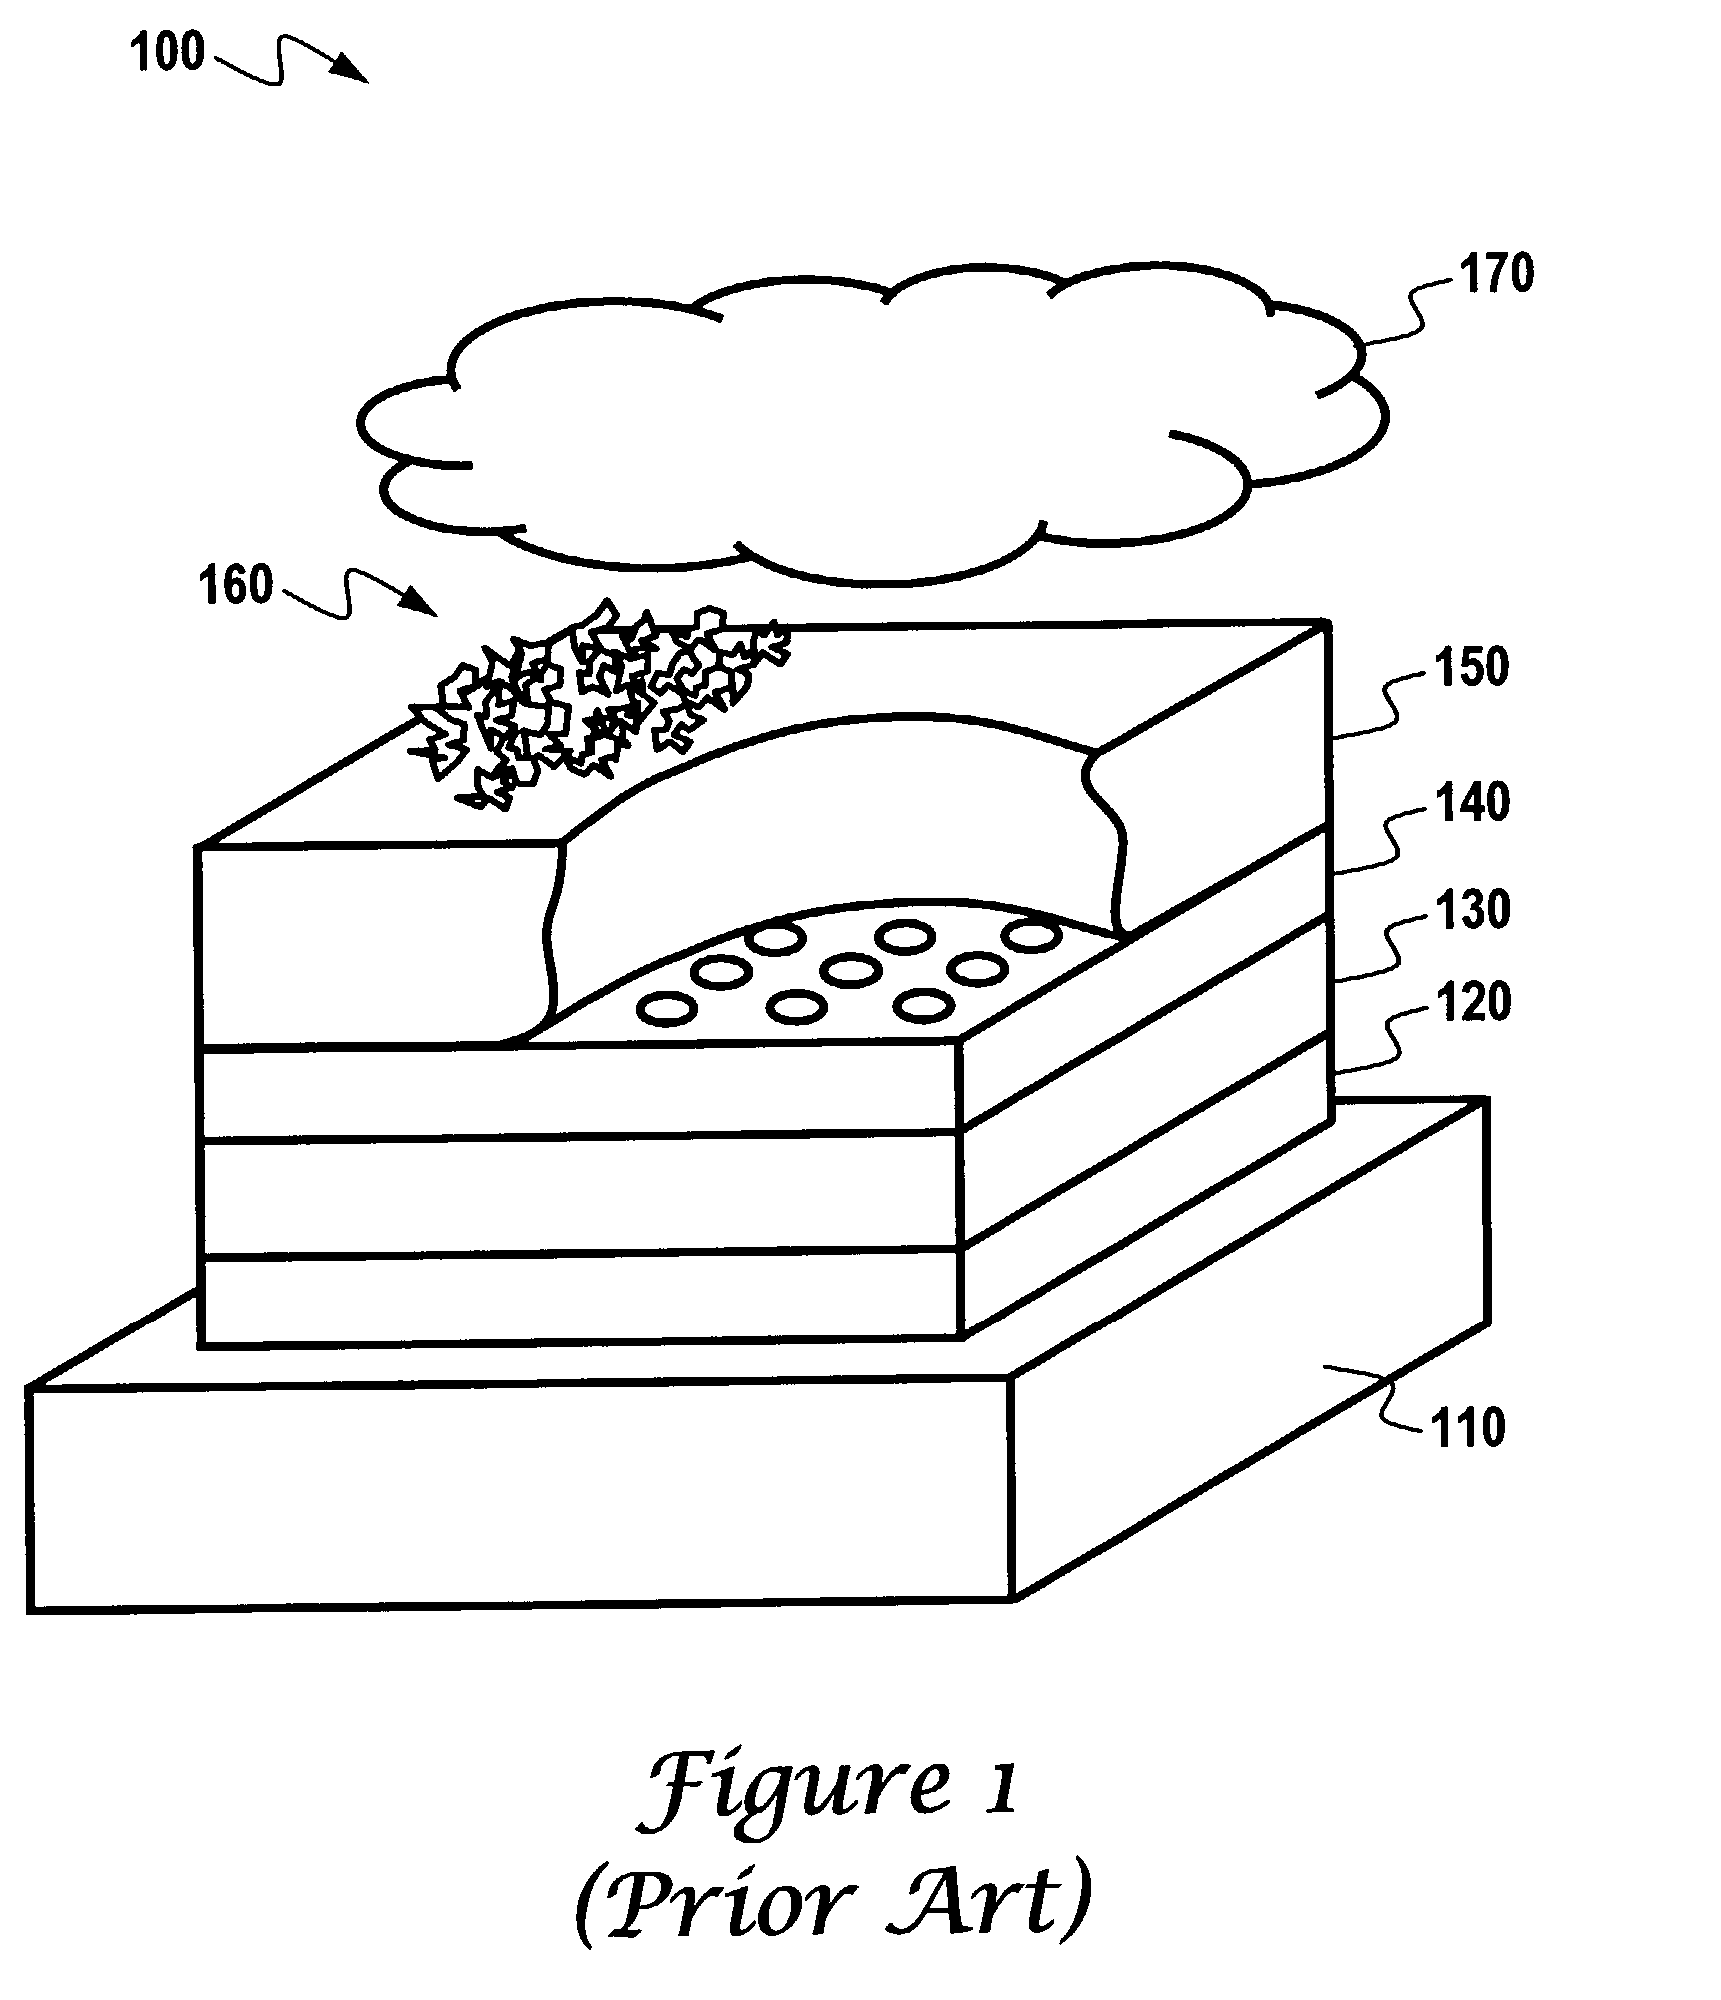 patent us20040008471 - relative humidity sensor with integrated signal conditioning